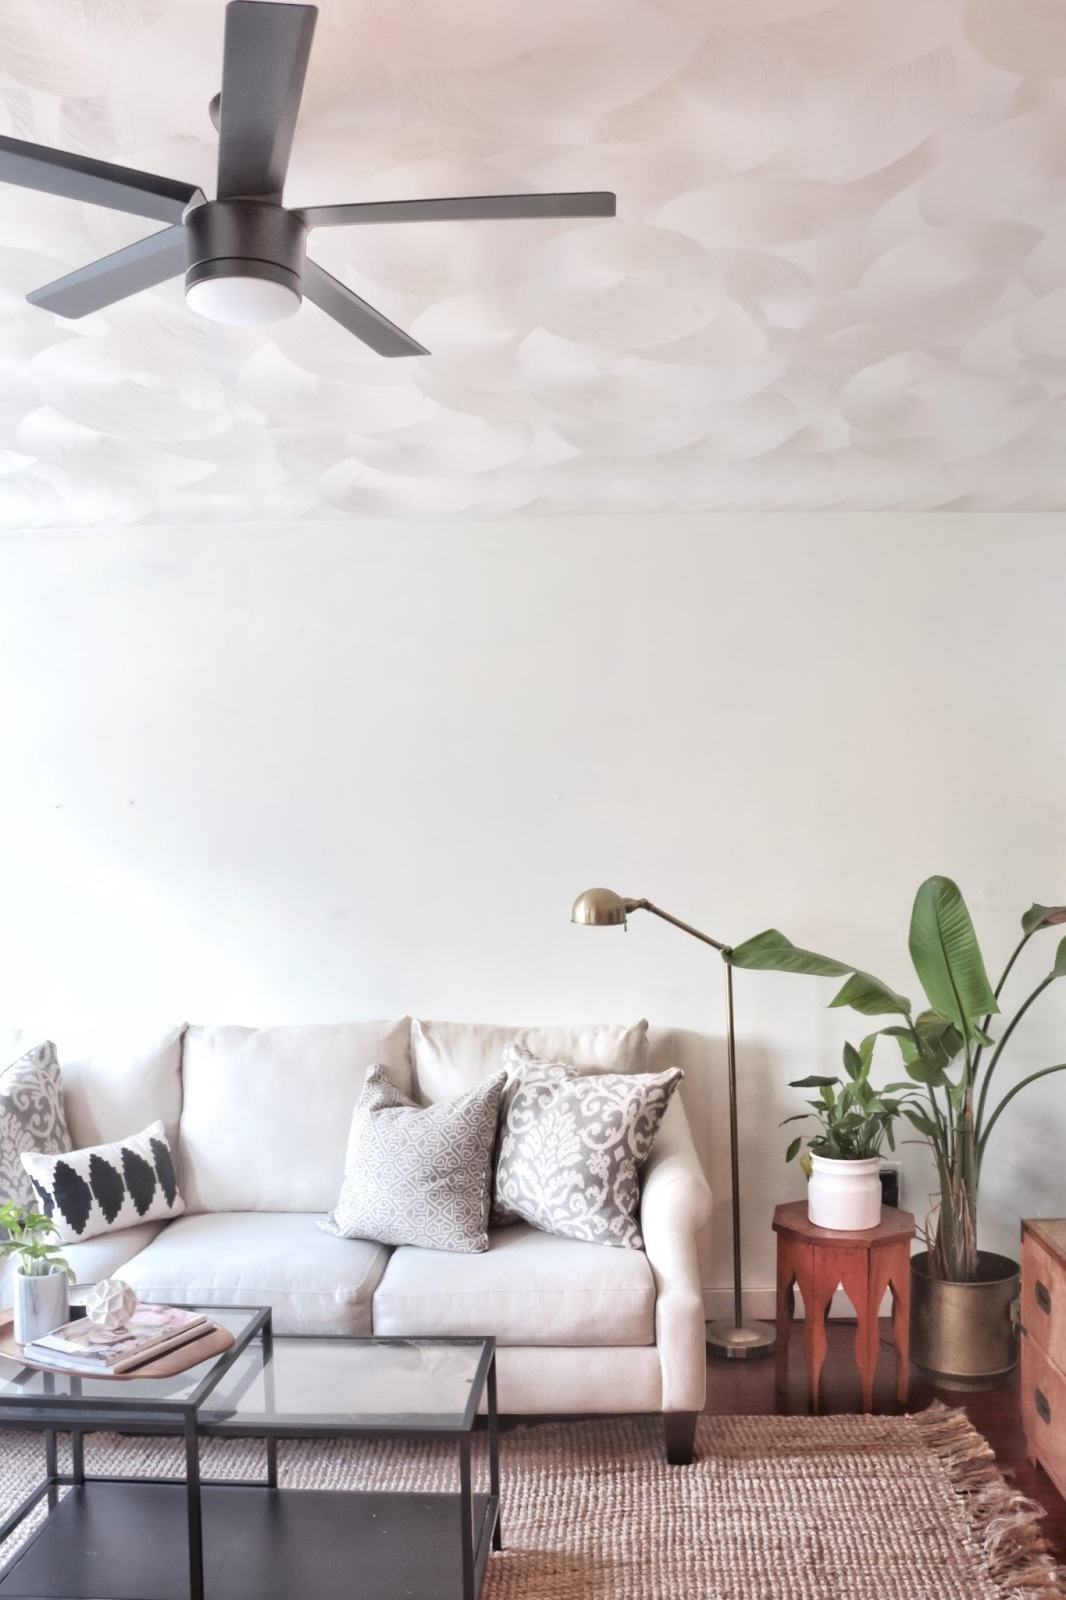 Famous Outdoor Ceiling Fans Under $200 Pertaining To 10 Sleek And Stylish Lighted Ceiling Fans Under $200 (And Our New (View 4 of 20)